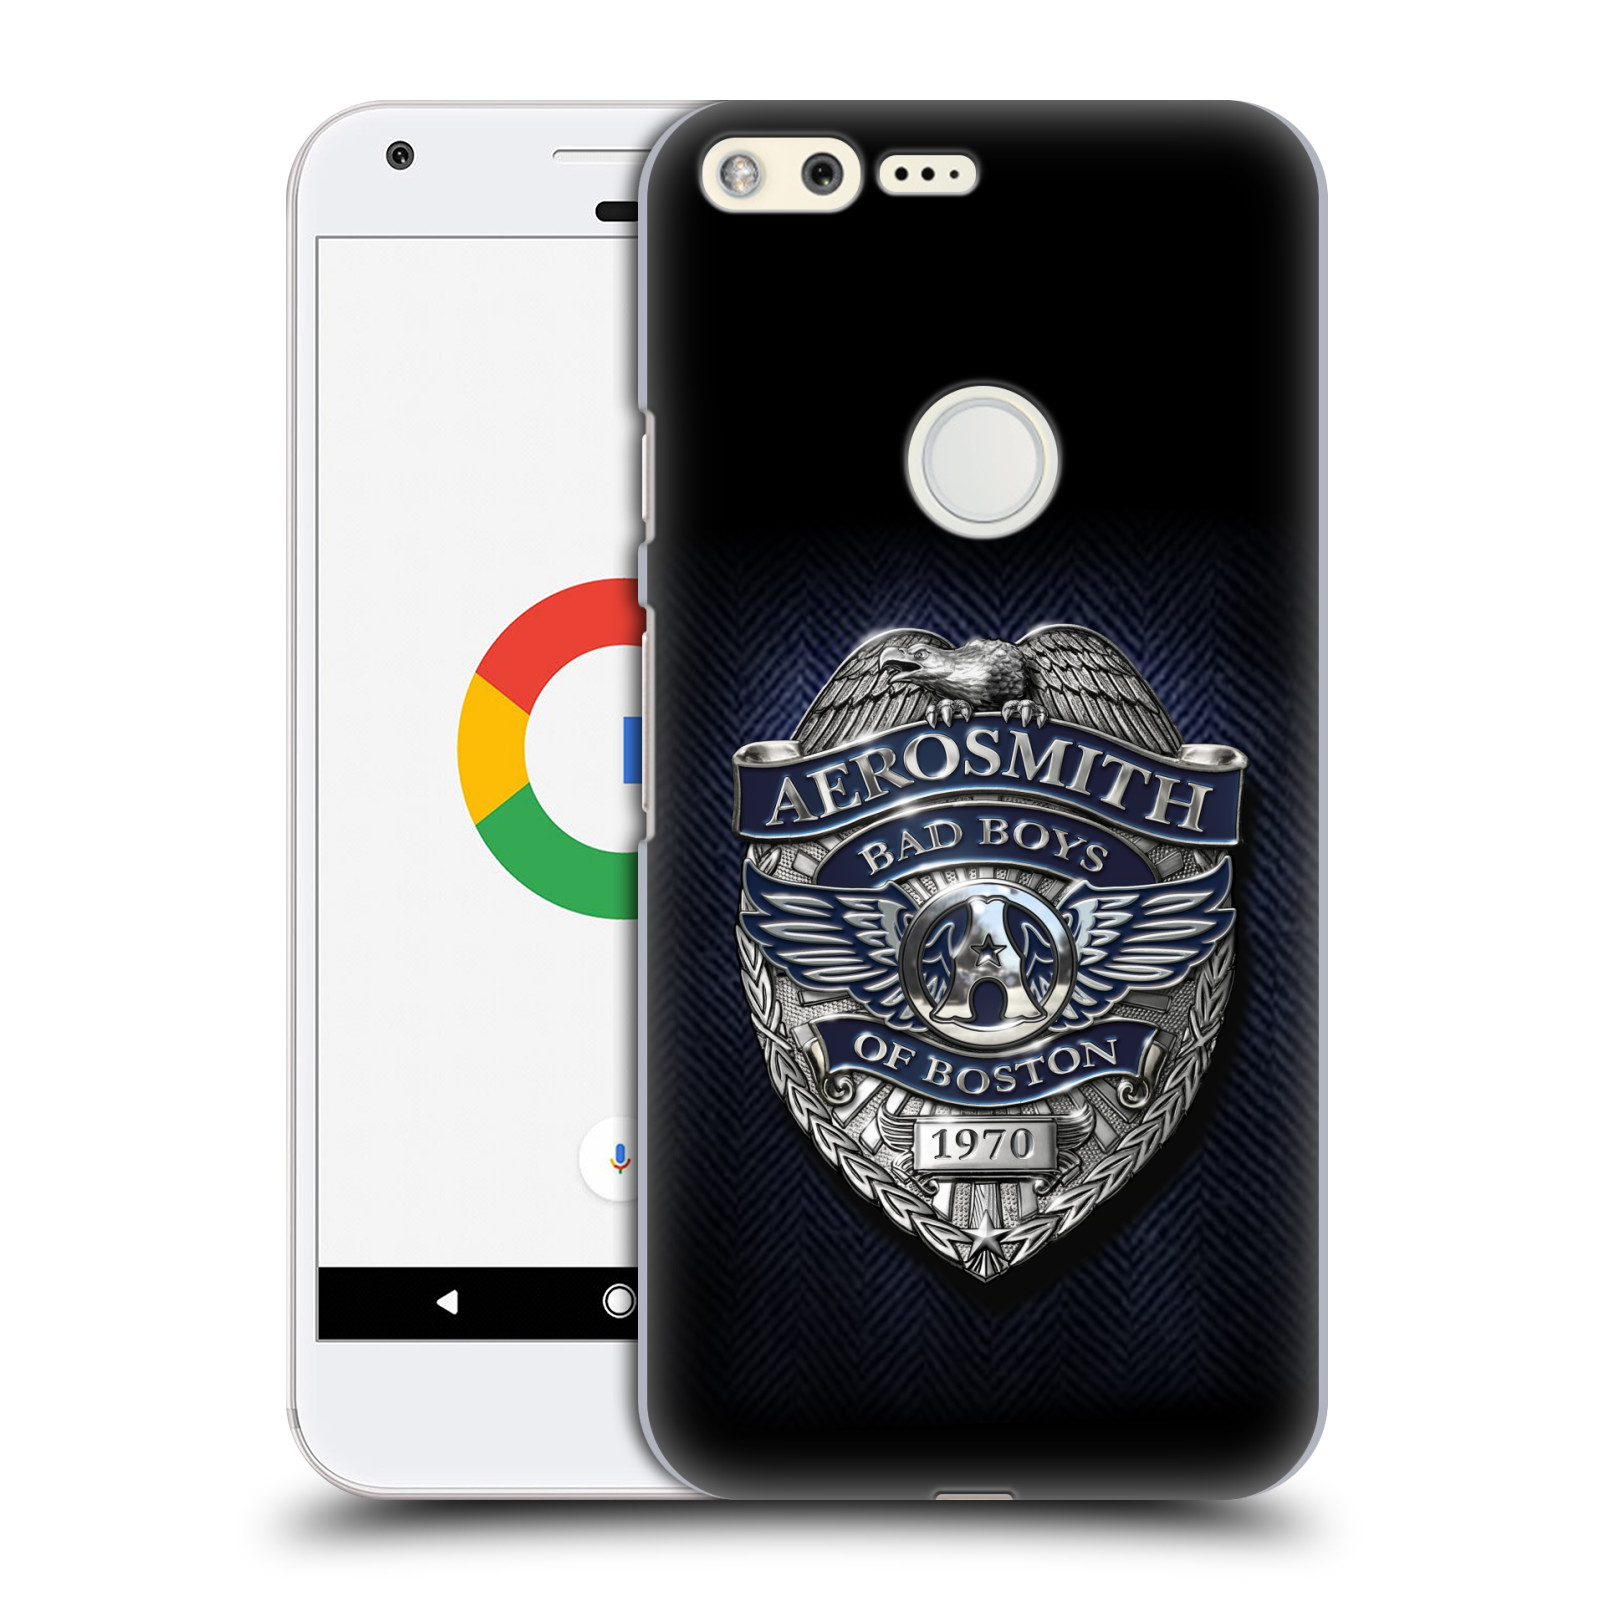 Plastové pouzdro na mobil Google Pixel HEAD CASE - Aerosmith - Bad Boys of Boston